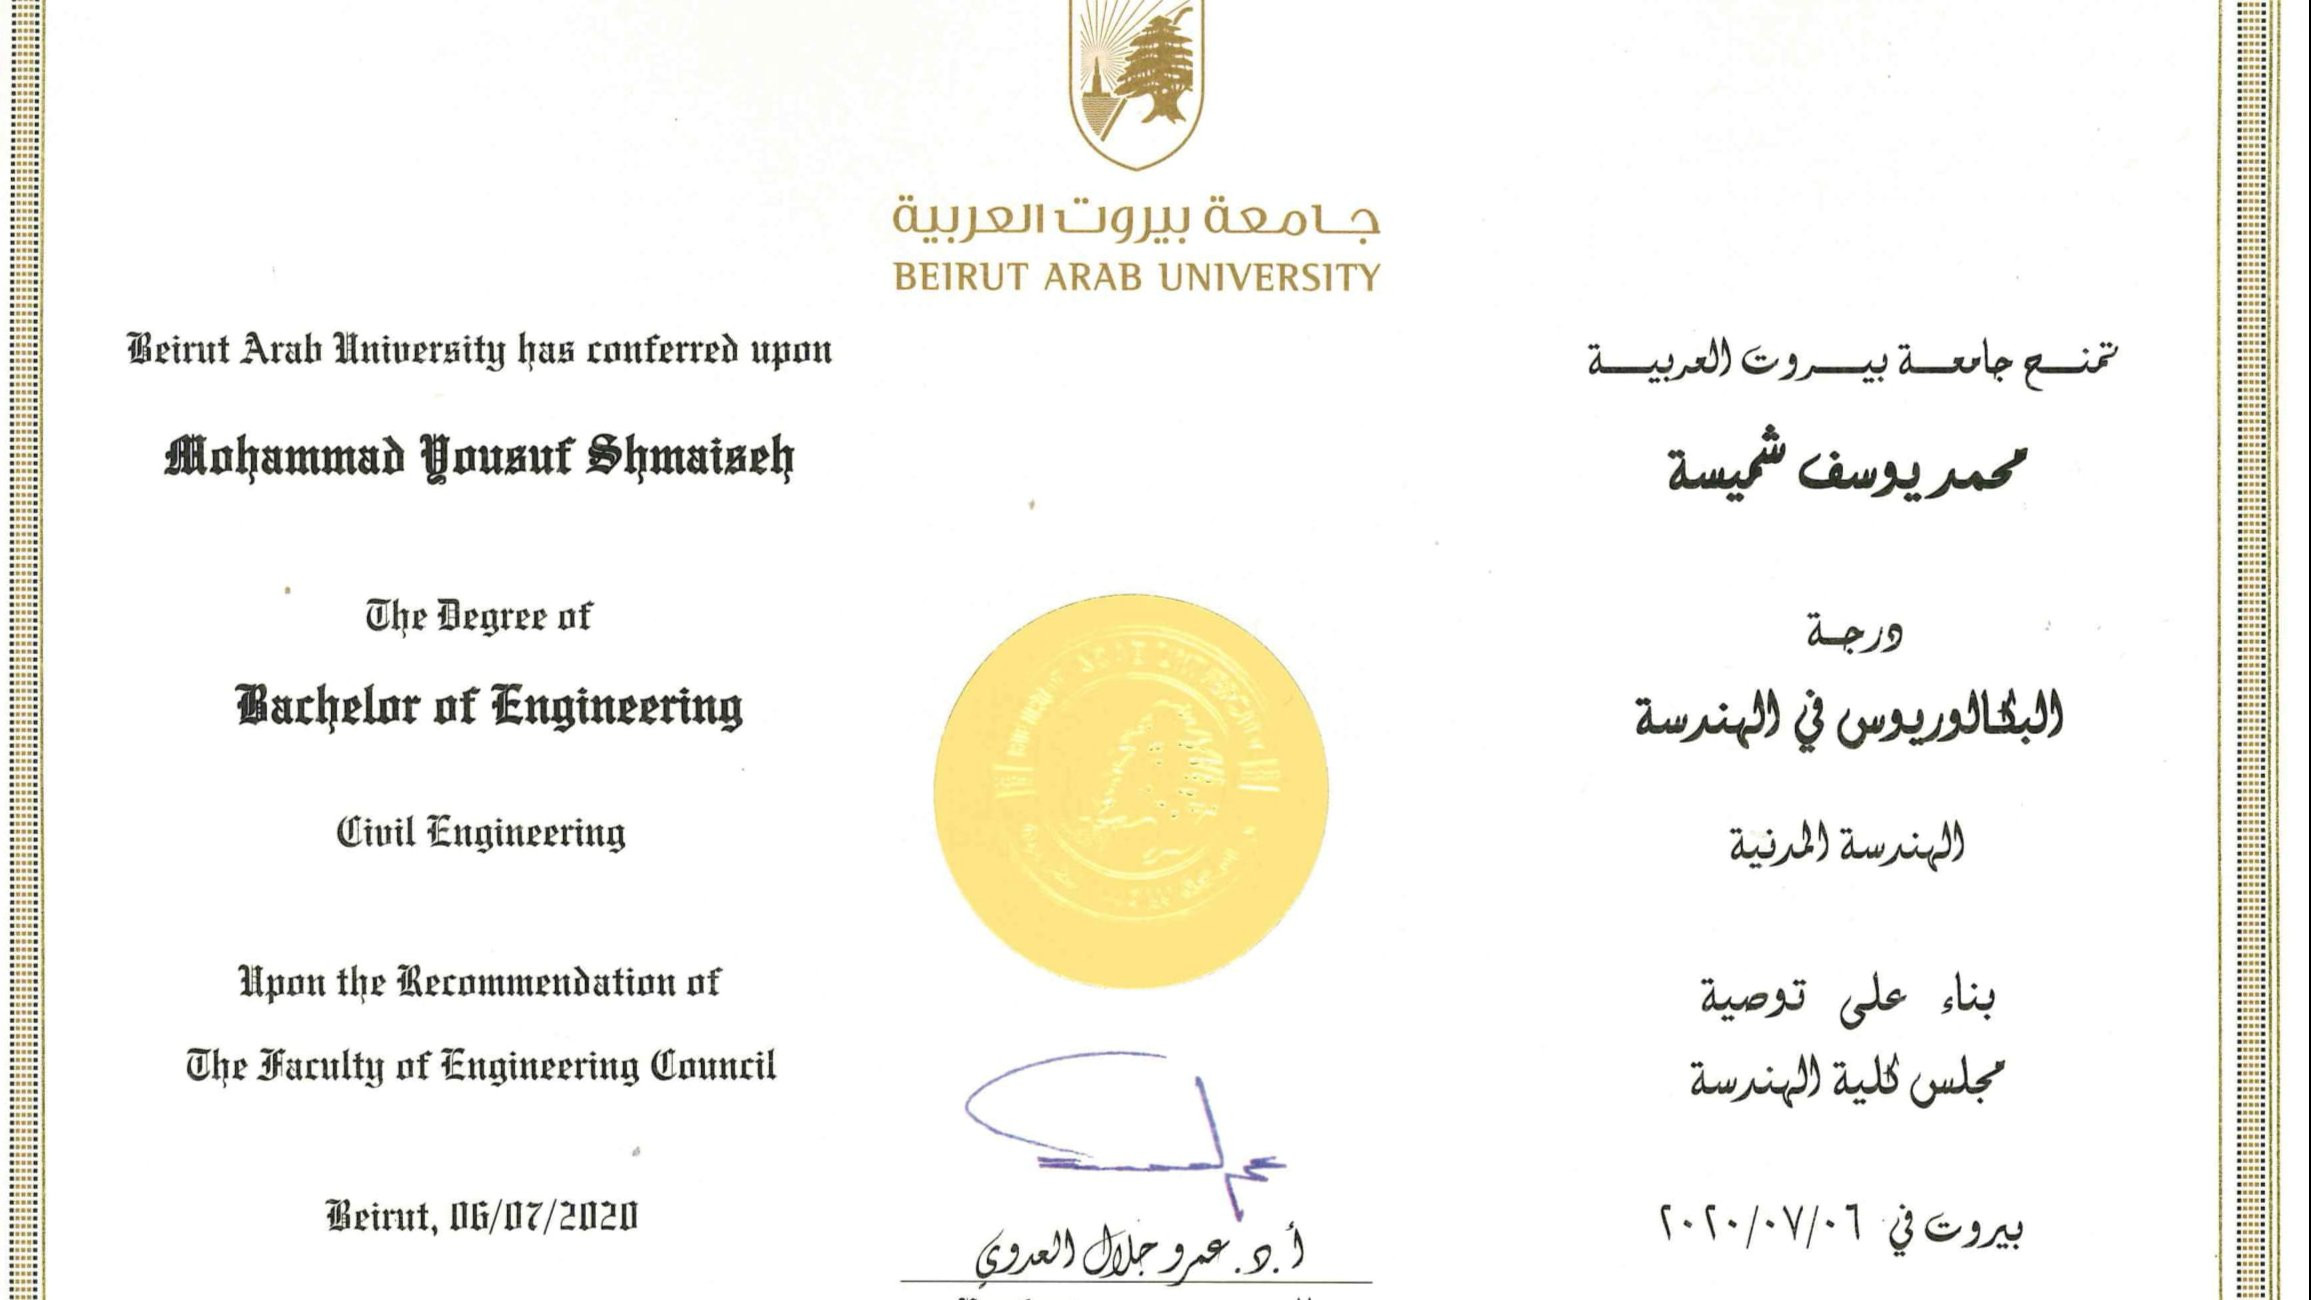 Certification in Bachelor degree in Civil and Environmental Engineering